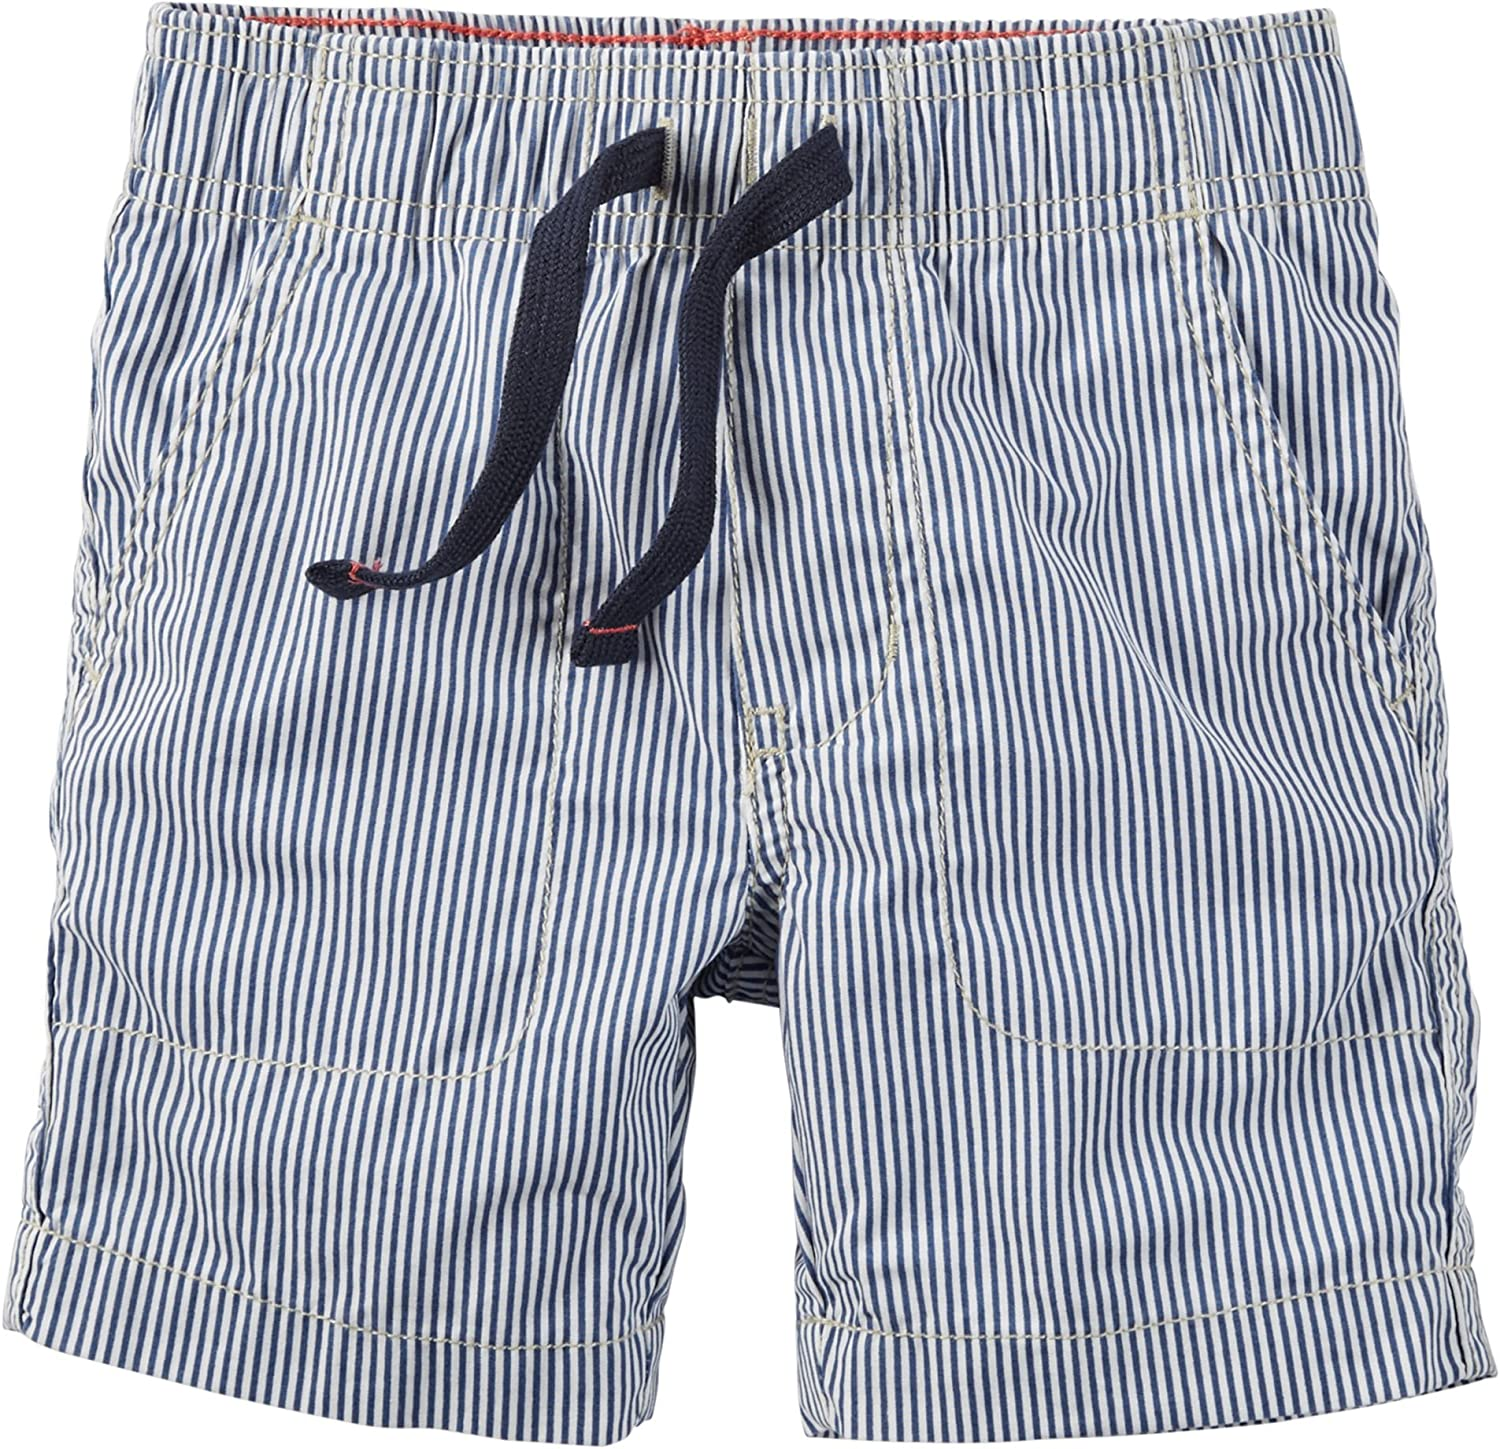 Carters Baby Boys Blue Stripe Pull On Shorts 3 Months